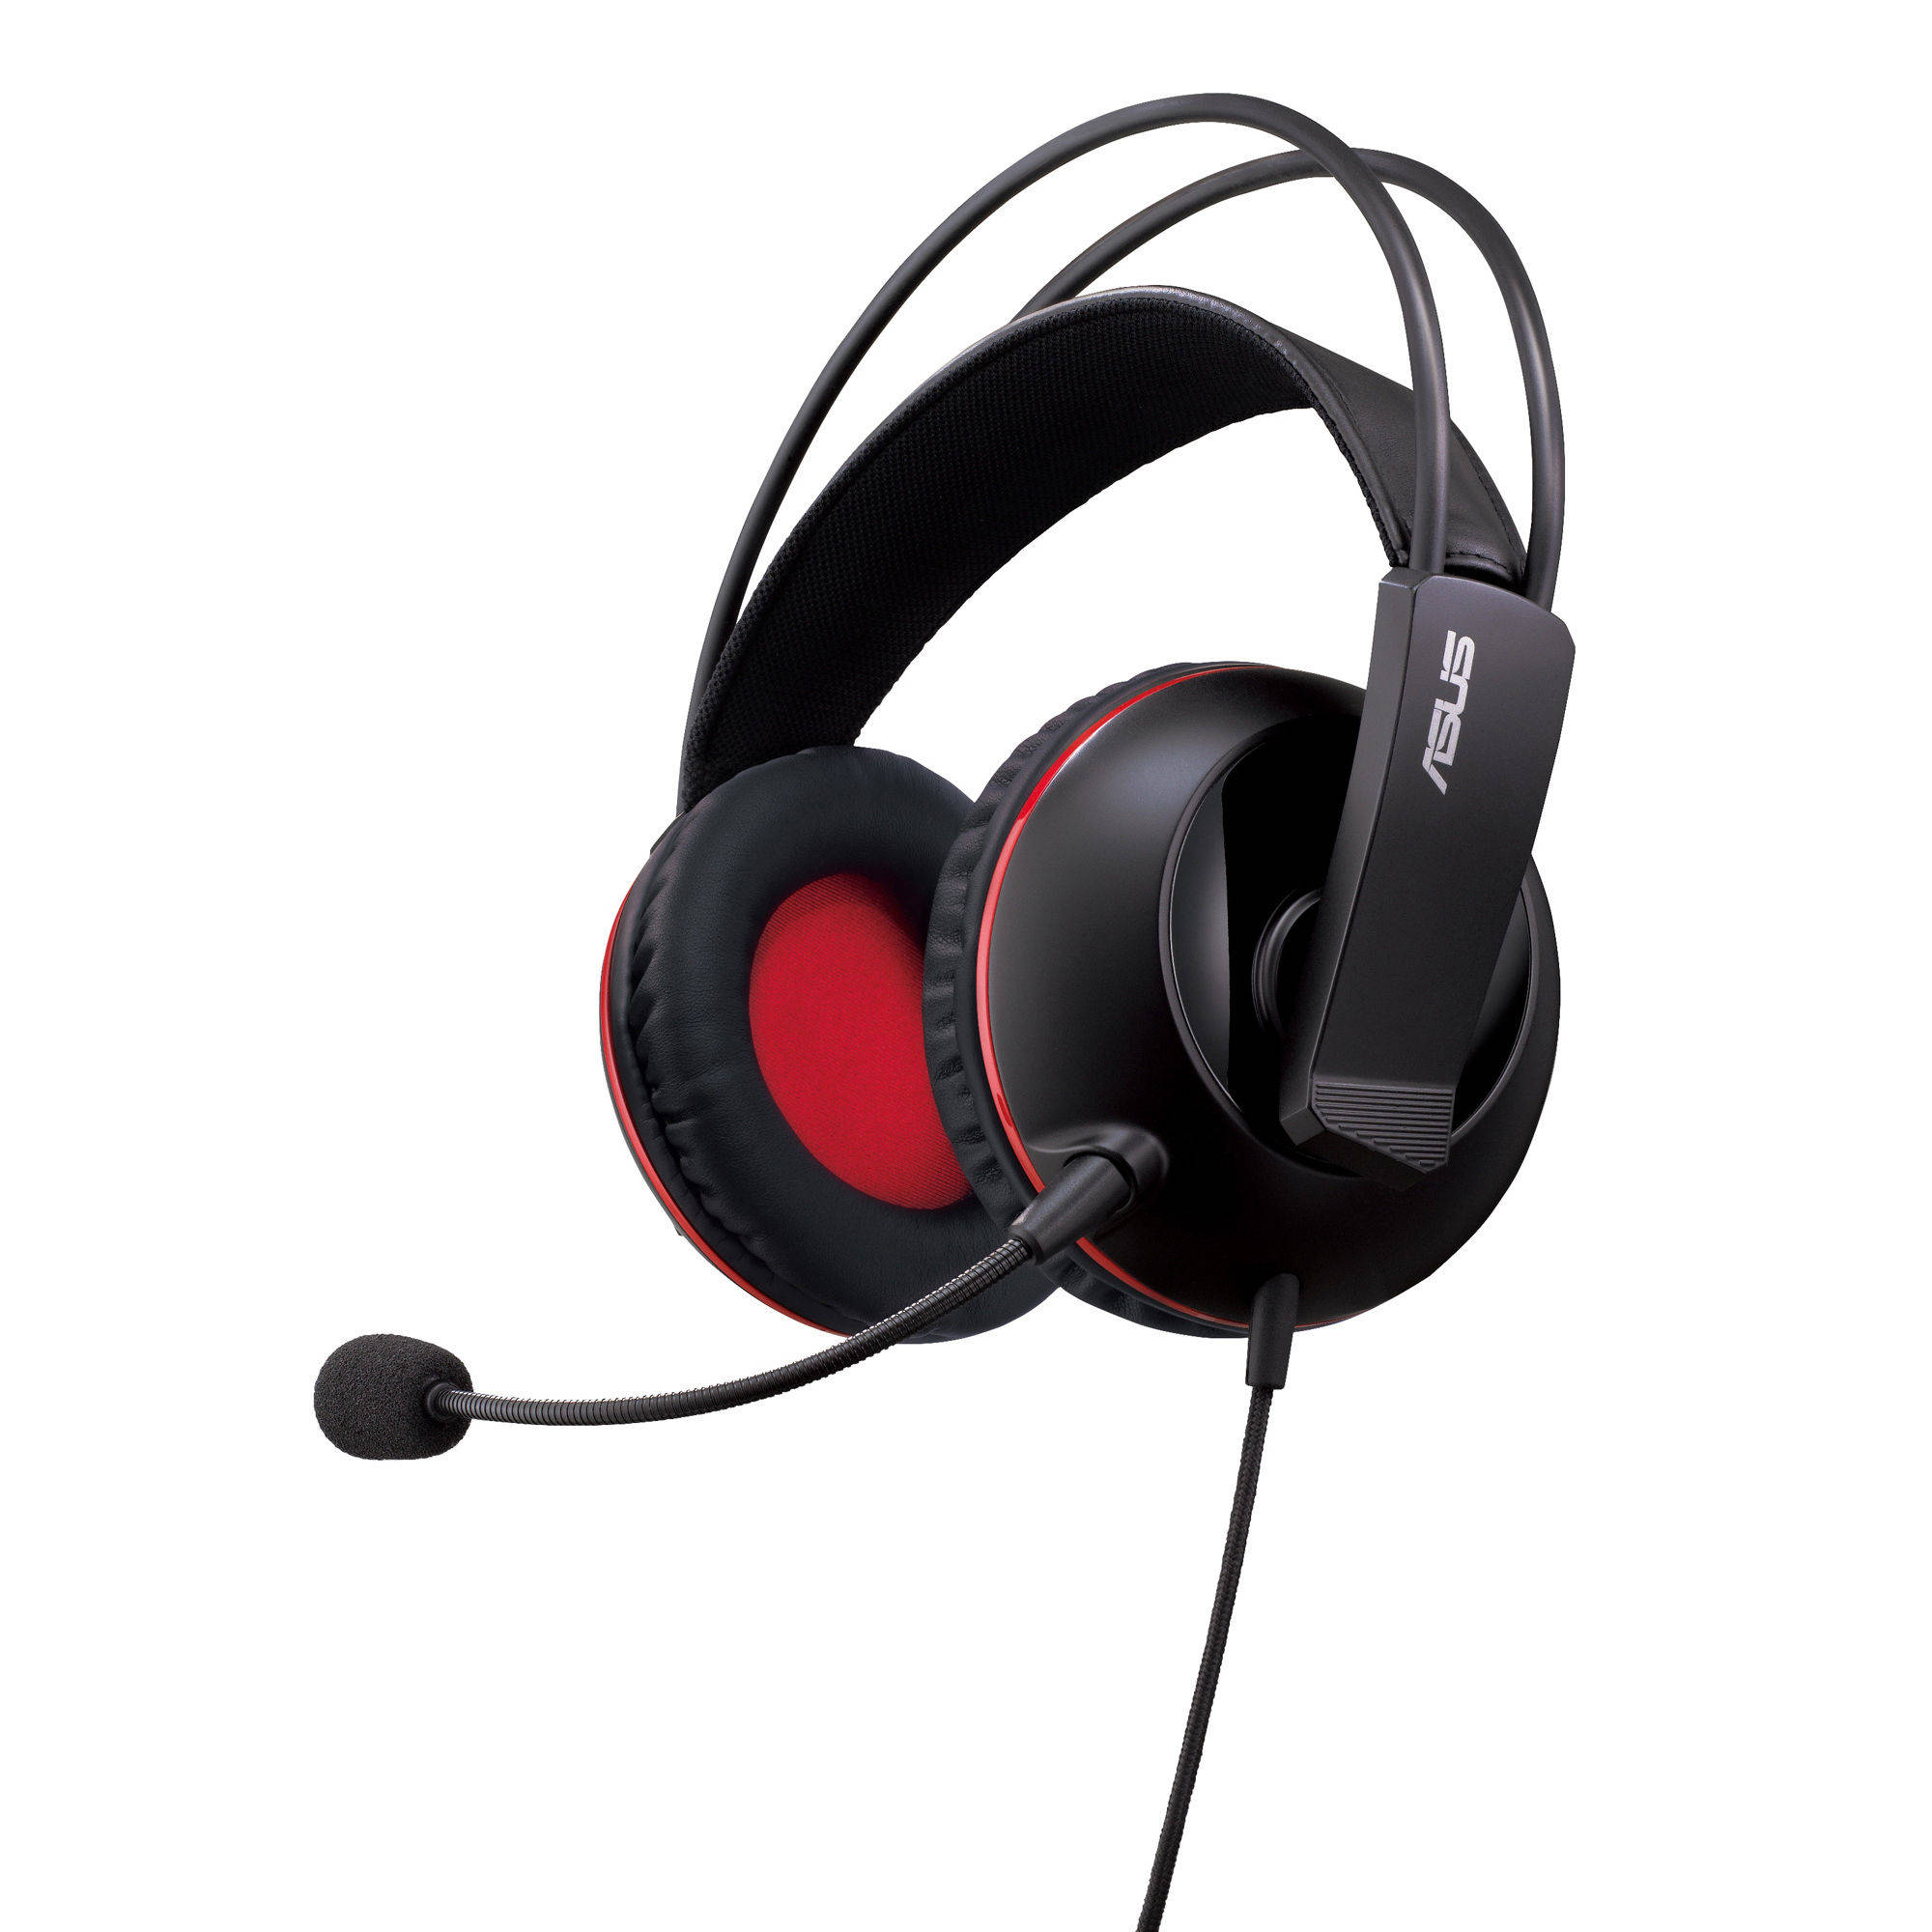 asus cerberus rog gaming headset black fierce pc rh fiercepc co uk Cerberus Greek Mythology Cerberus Greek Mythology